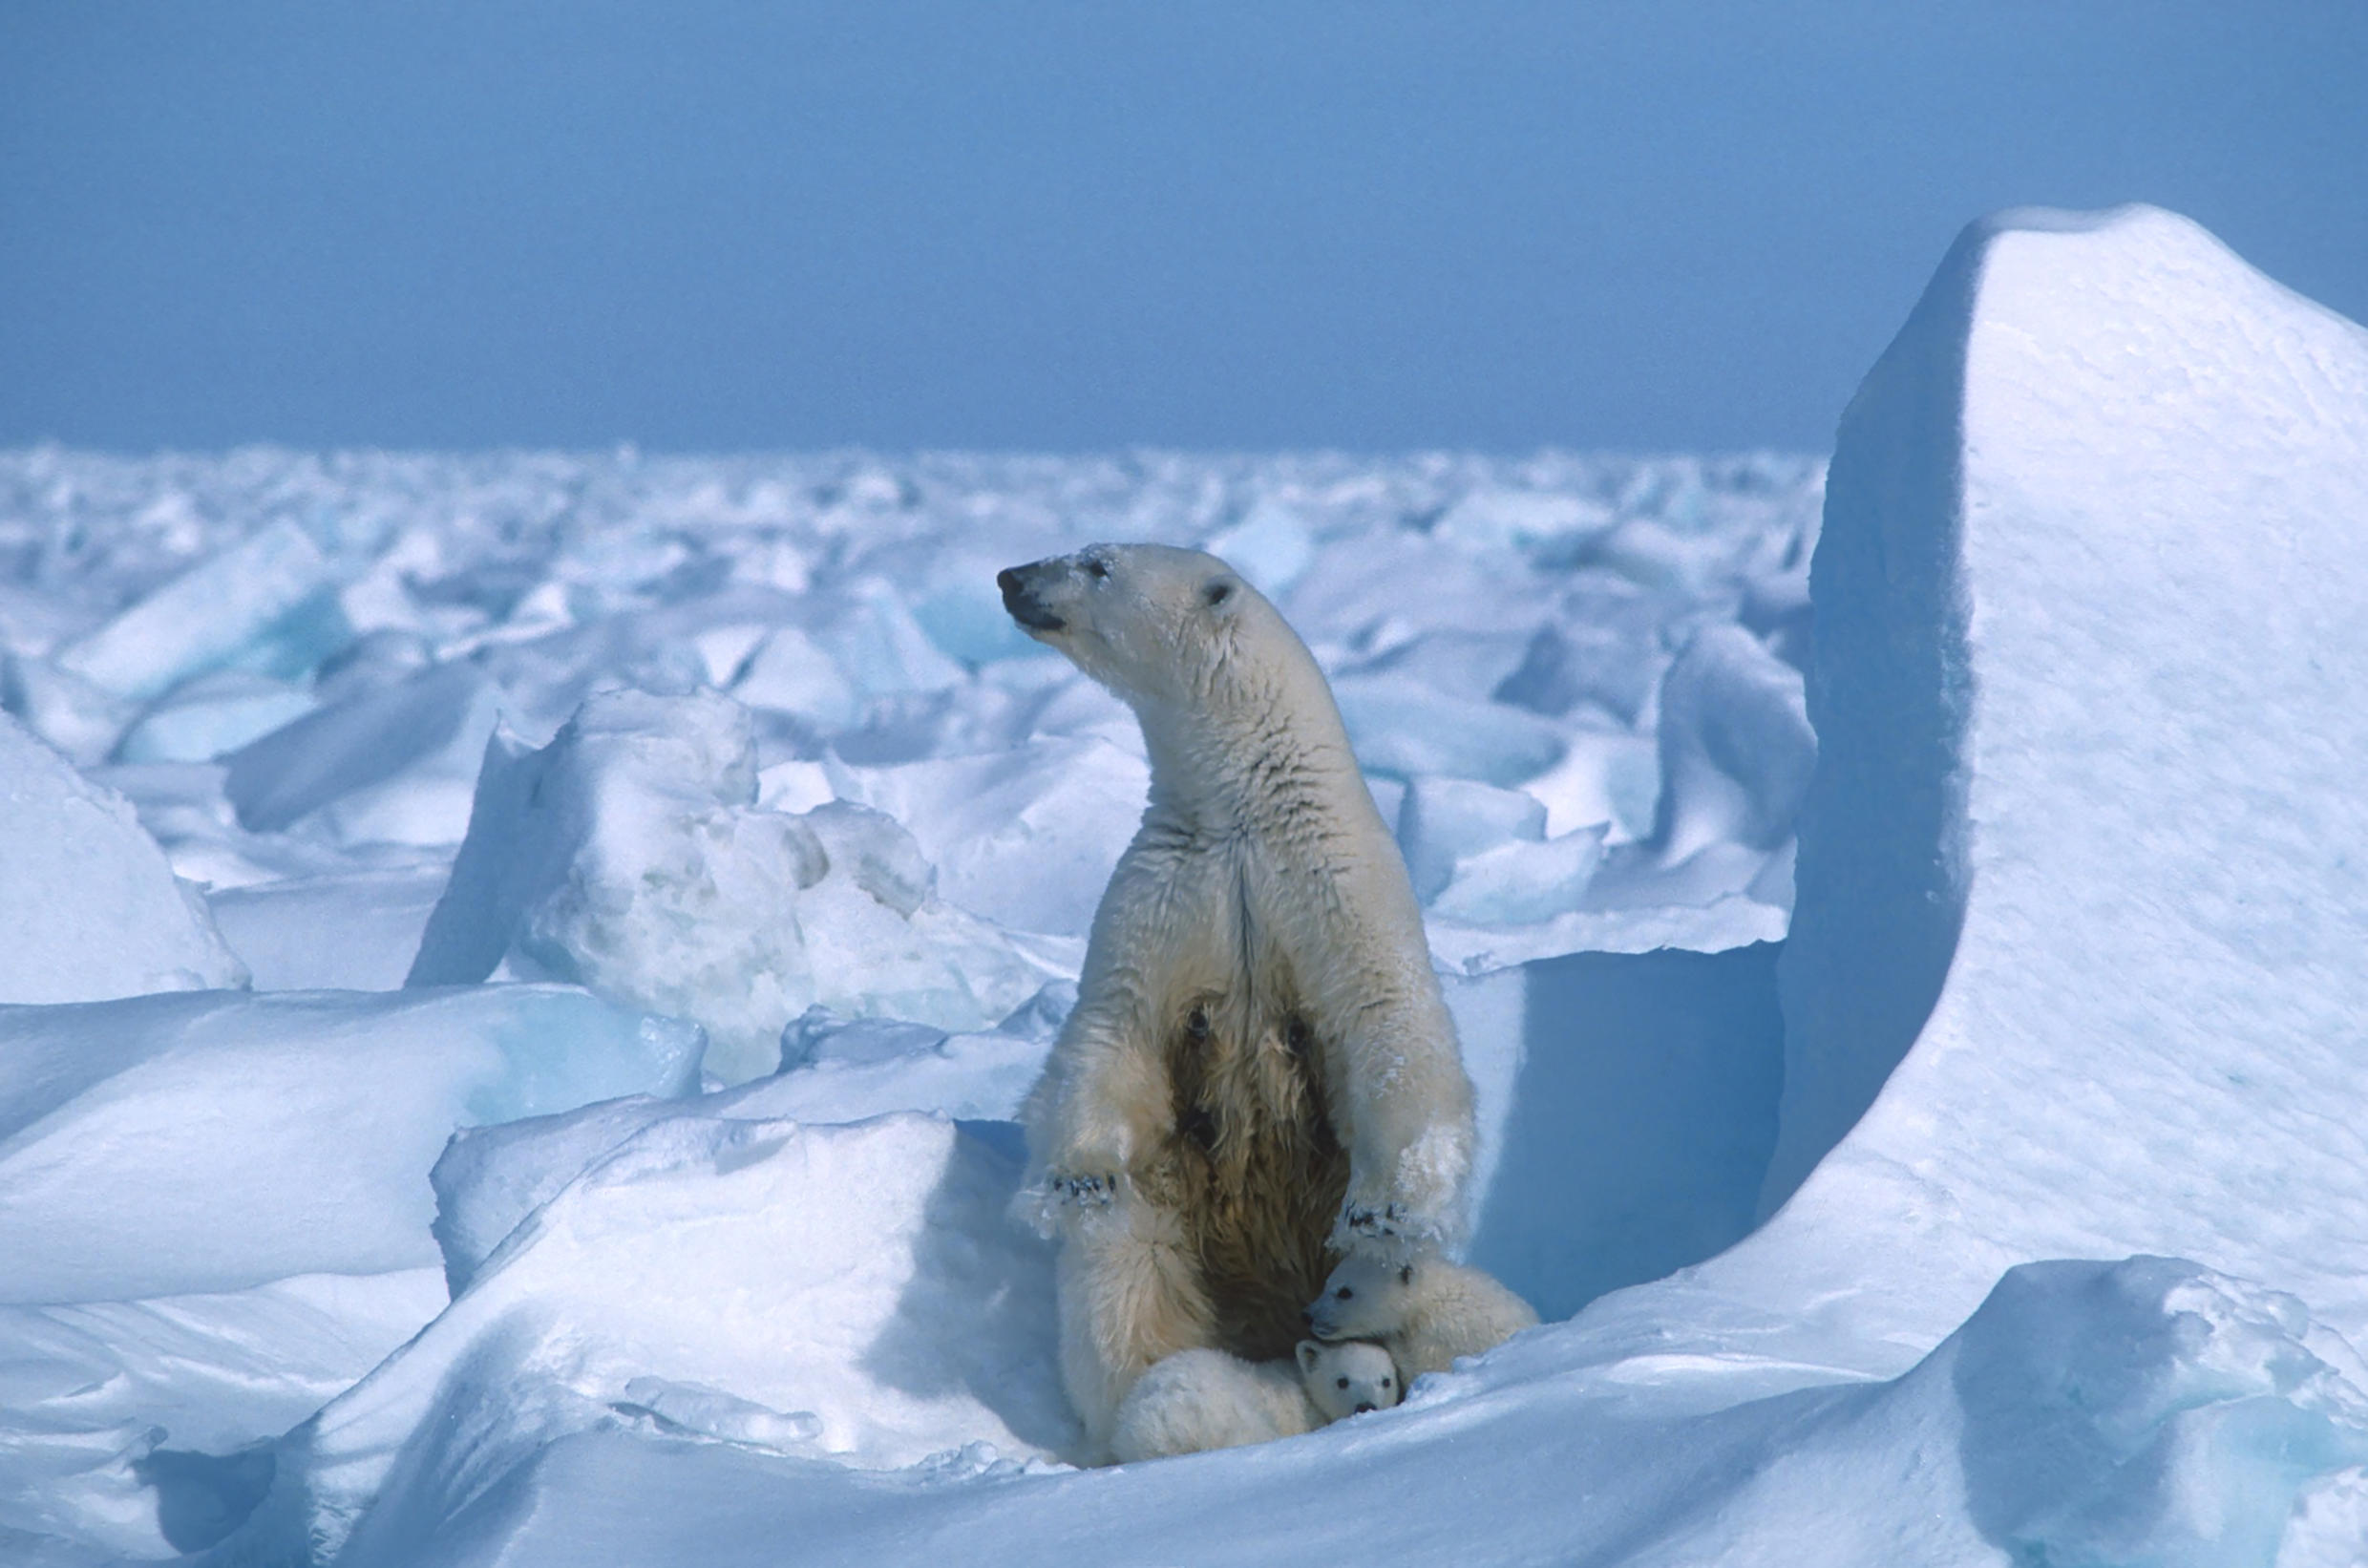 The Arctic National Wildlife Refuge is home to polar bears such as this one, photographed on sea ice northeast of Prudhoe Bay in Alaska